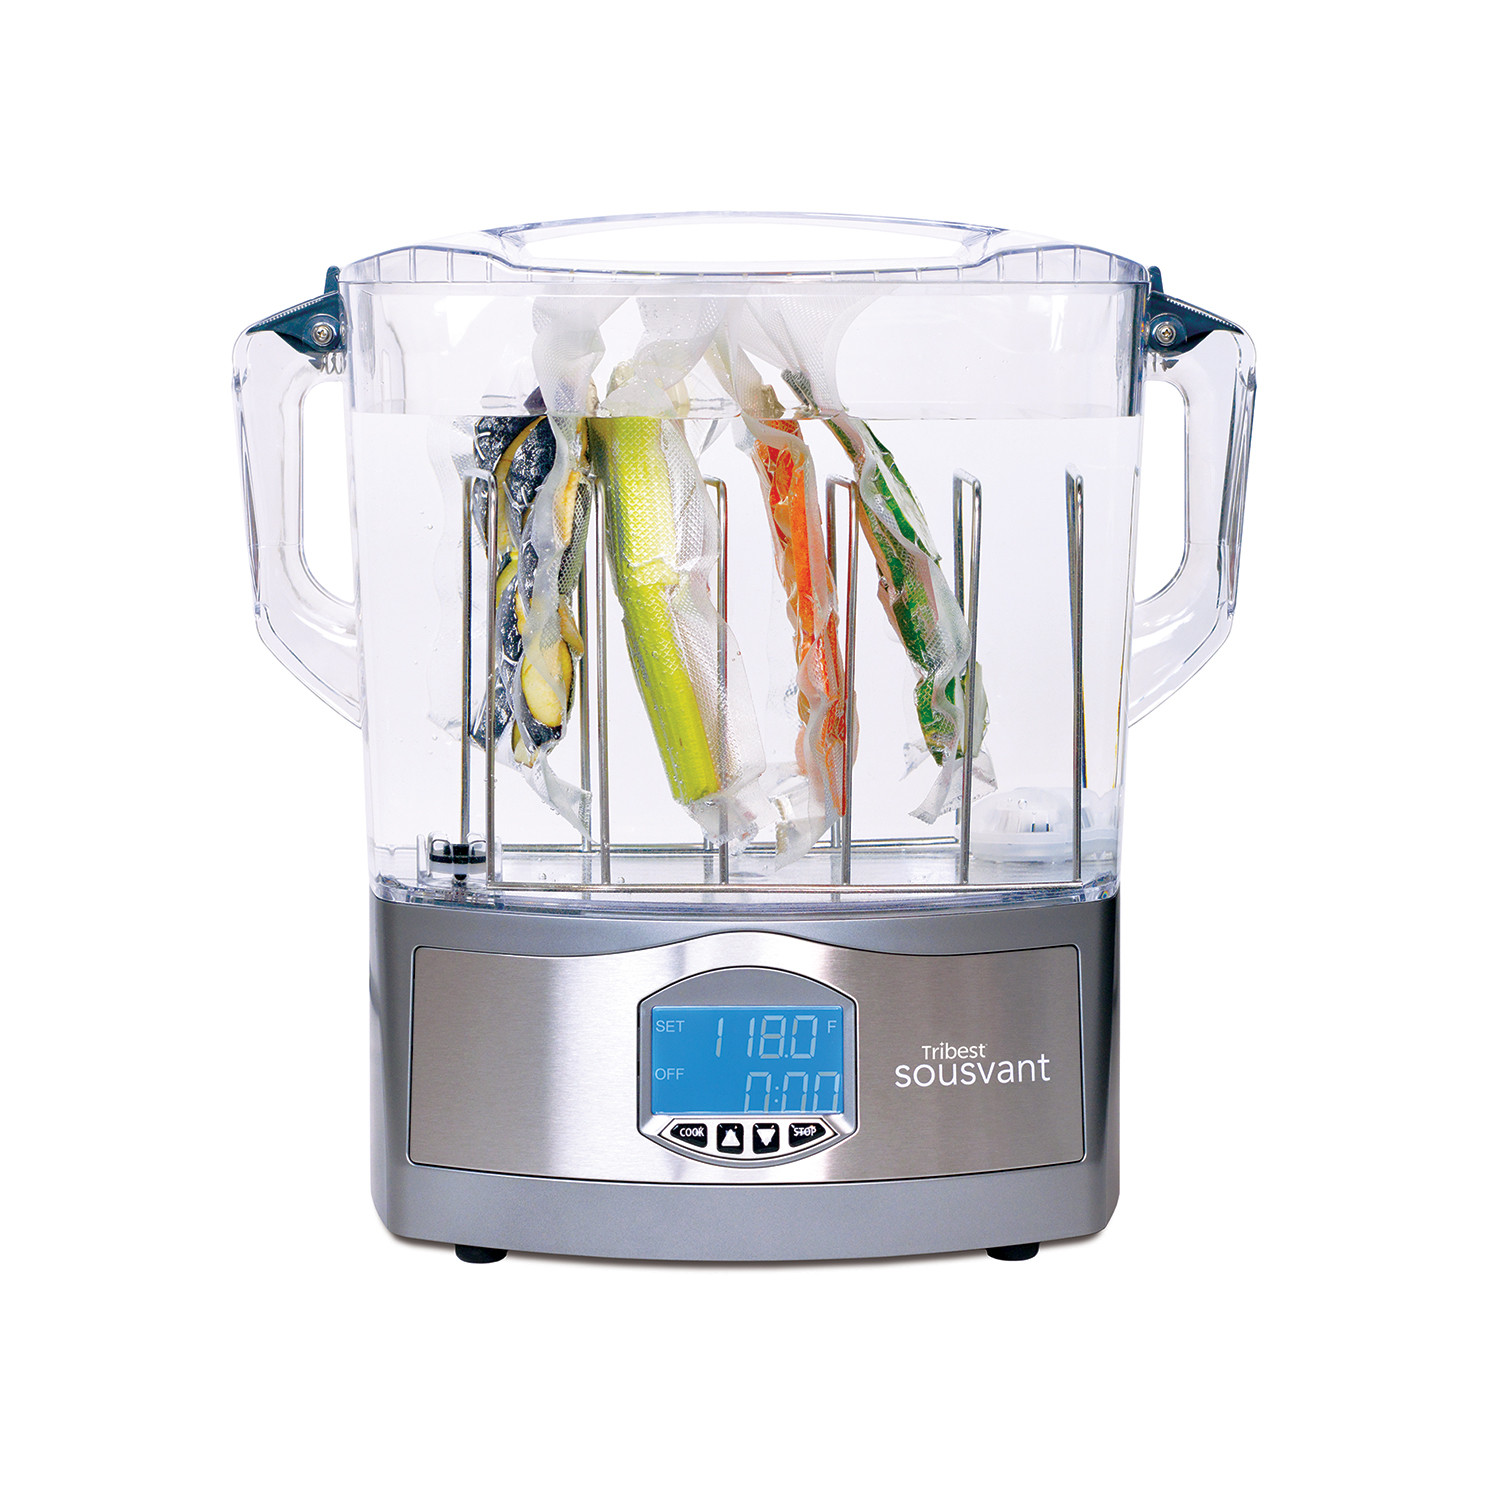 sous vide machine for sale